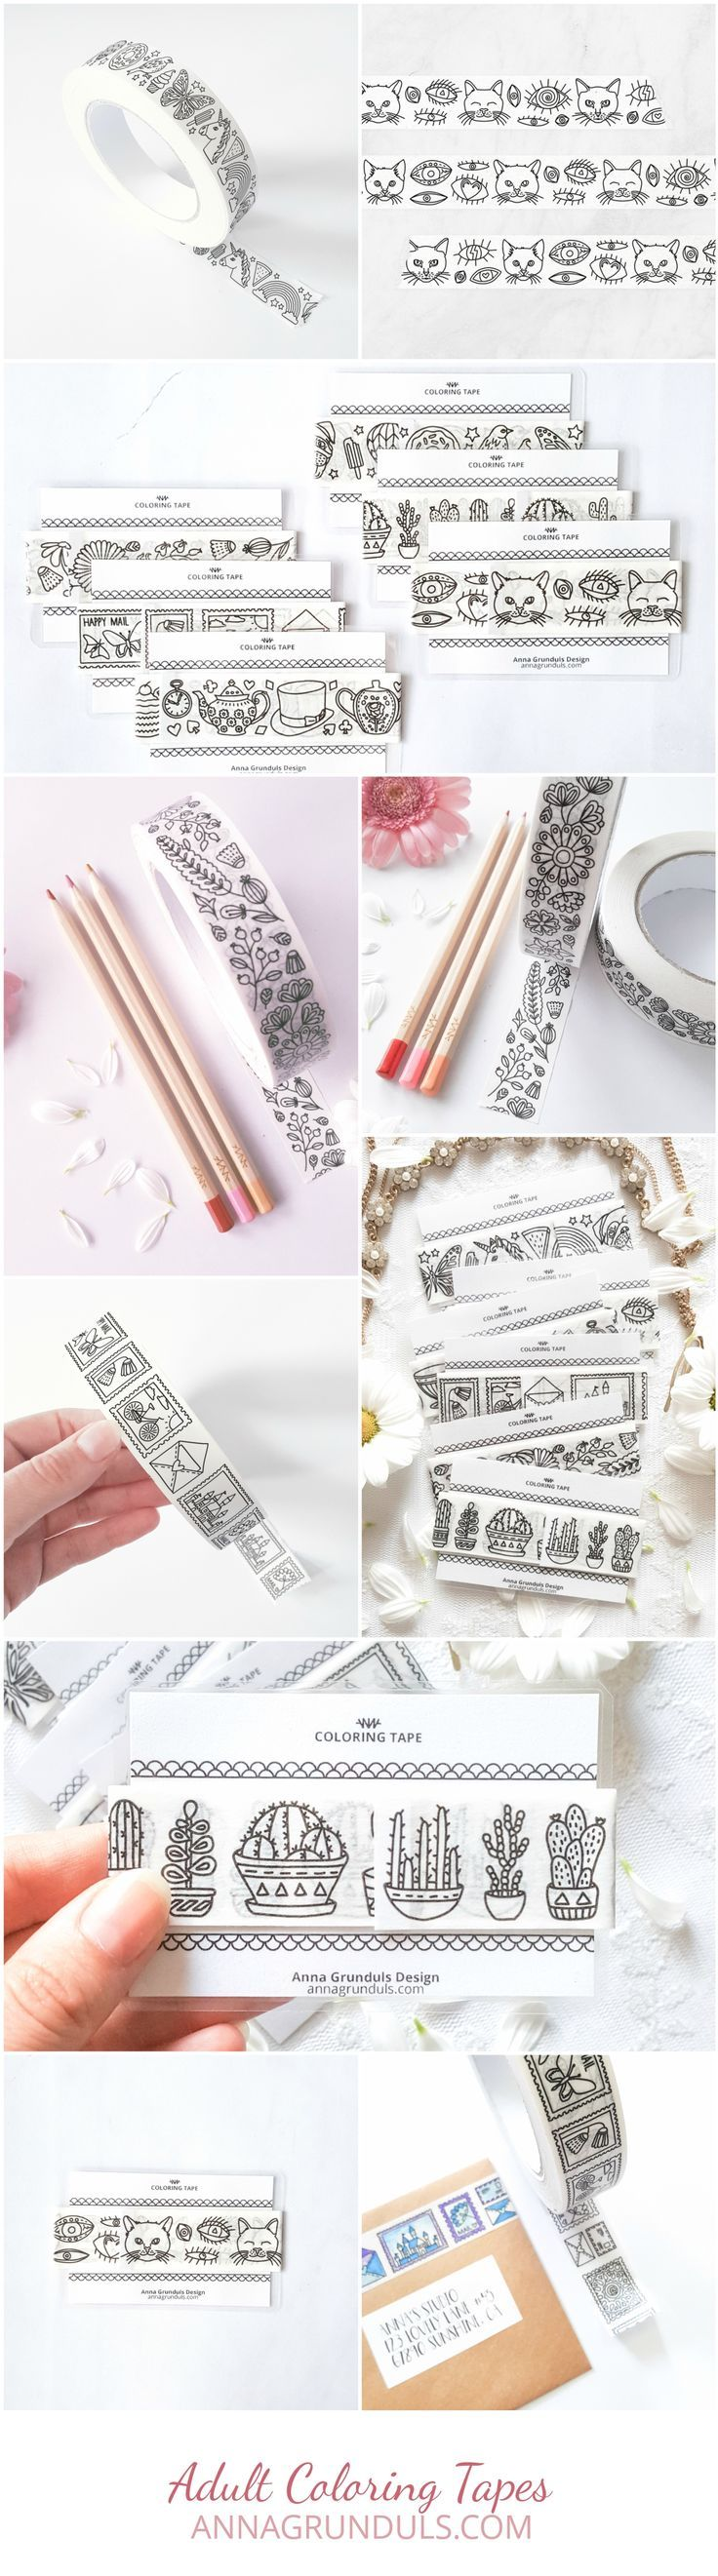 Omg, look at these adult coloring tapes! It would be perfect for all paper crafts, think card making, scrapbooking, gift wrapping! Adhesive tapes to color in must be the idea of the year :)